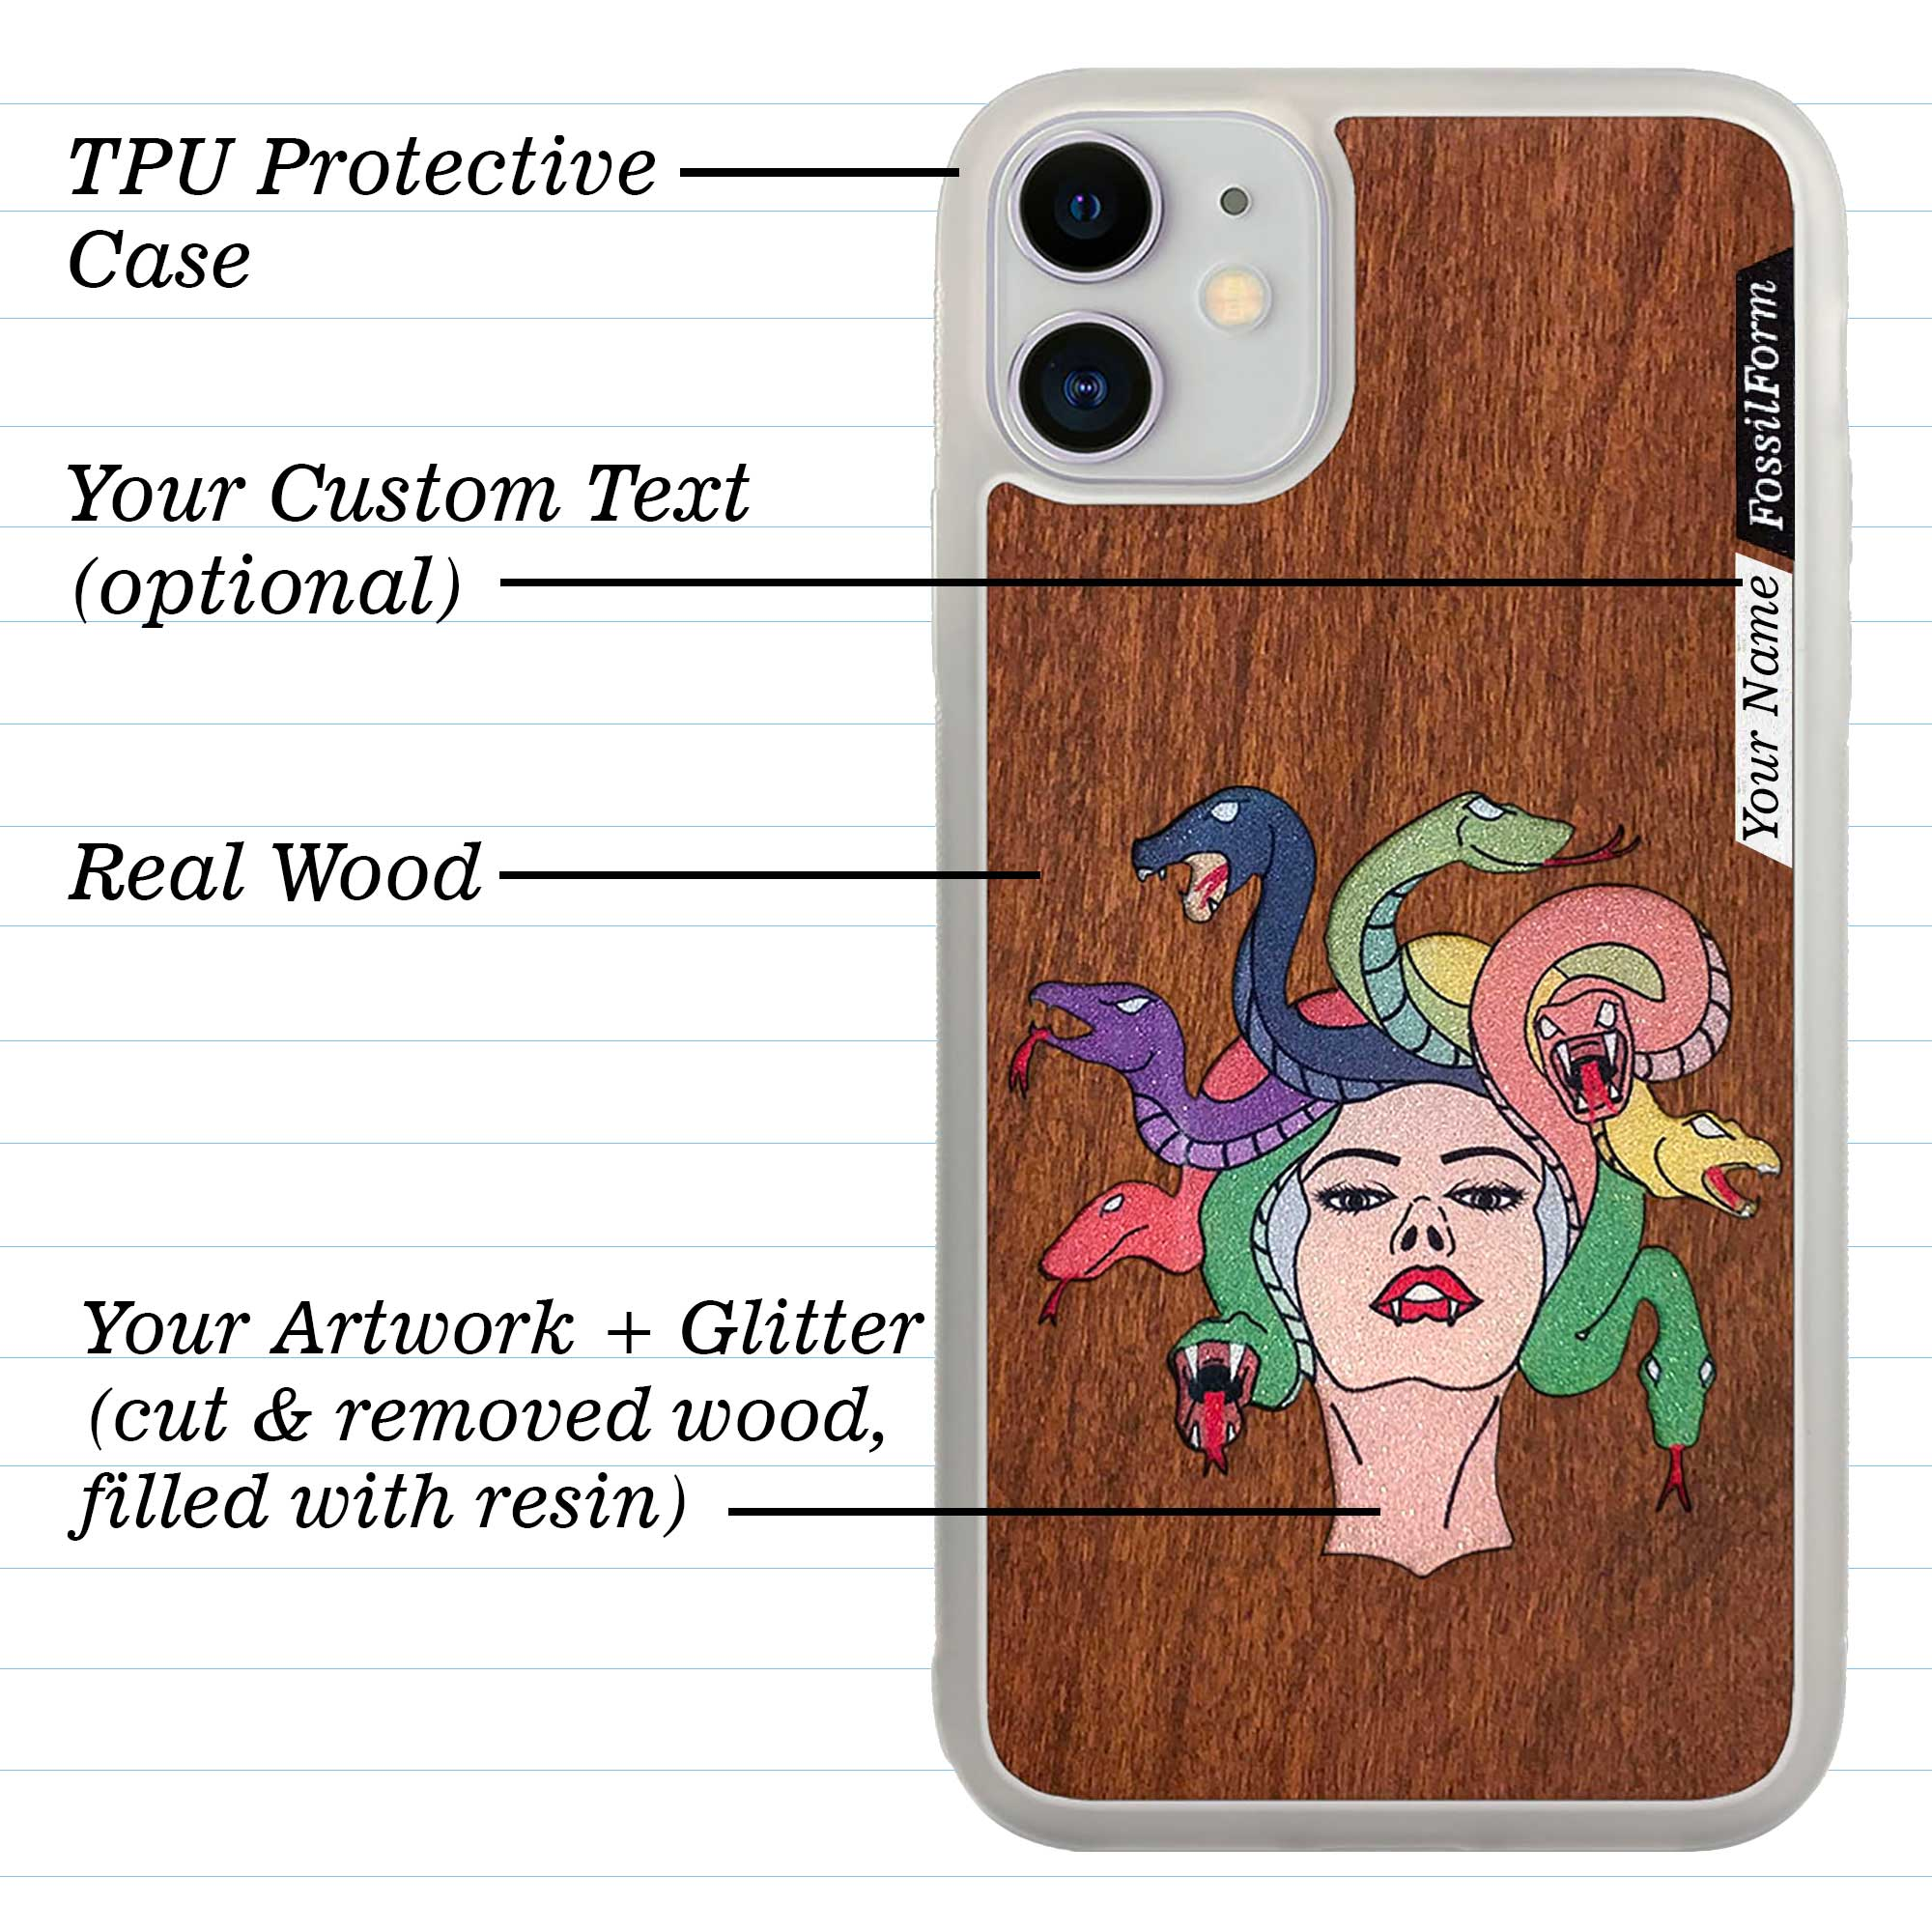 Custom-Made Wood + Resin + Glitter Phone Case - White